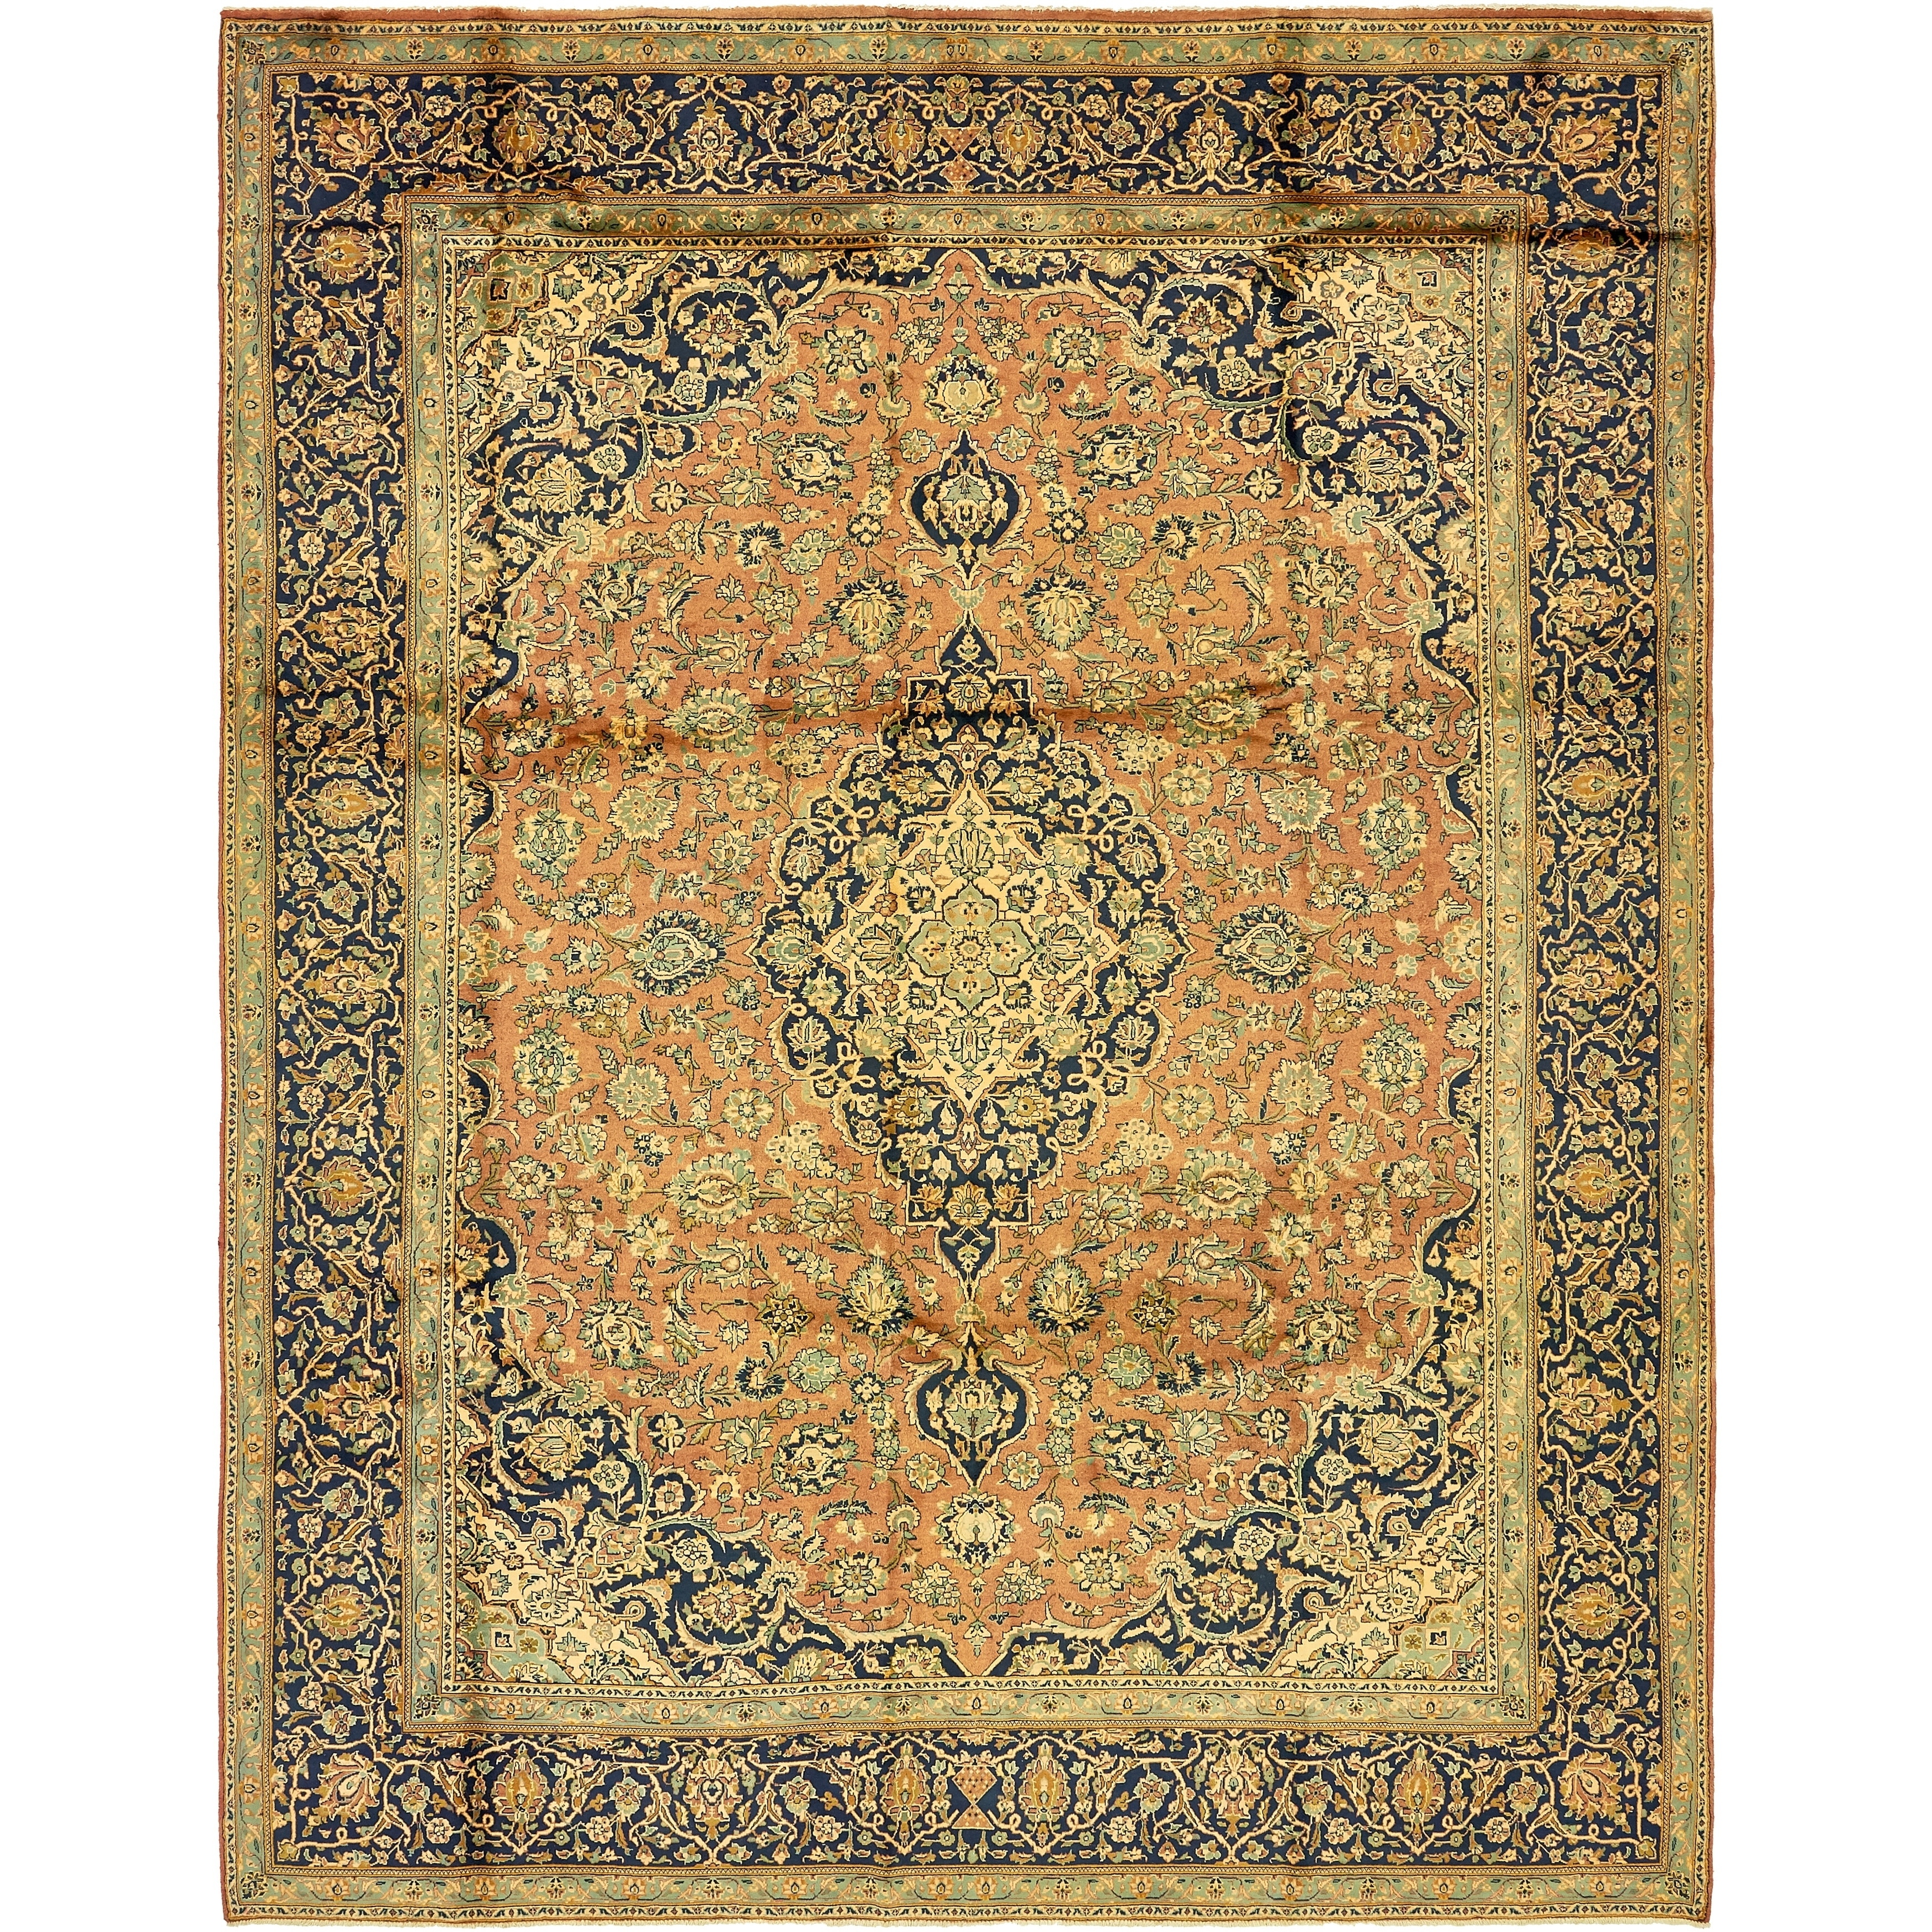 Hand Knotted Kashan Semi Antique Wool Area Rug - 9' 7 x 12' 6 (peach - 9' 7 x 12' 6)